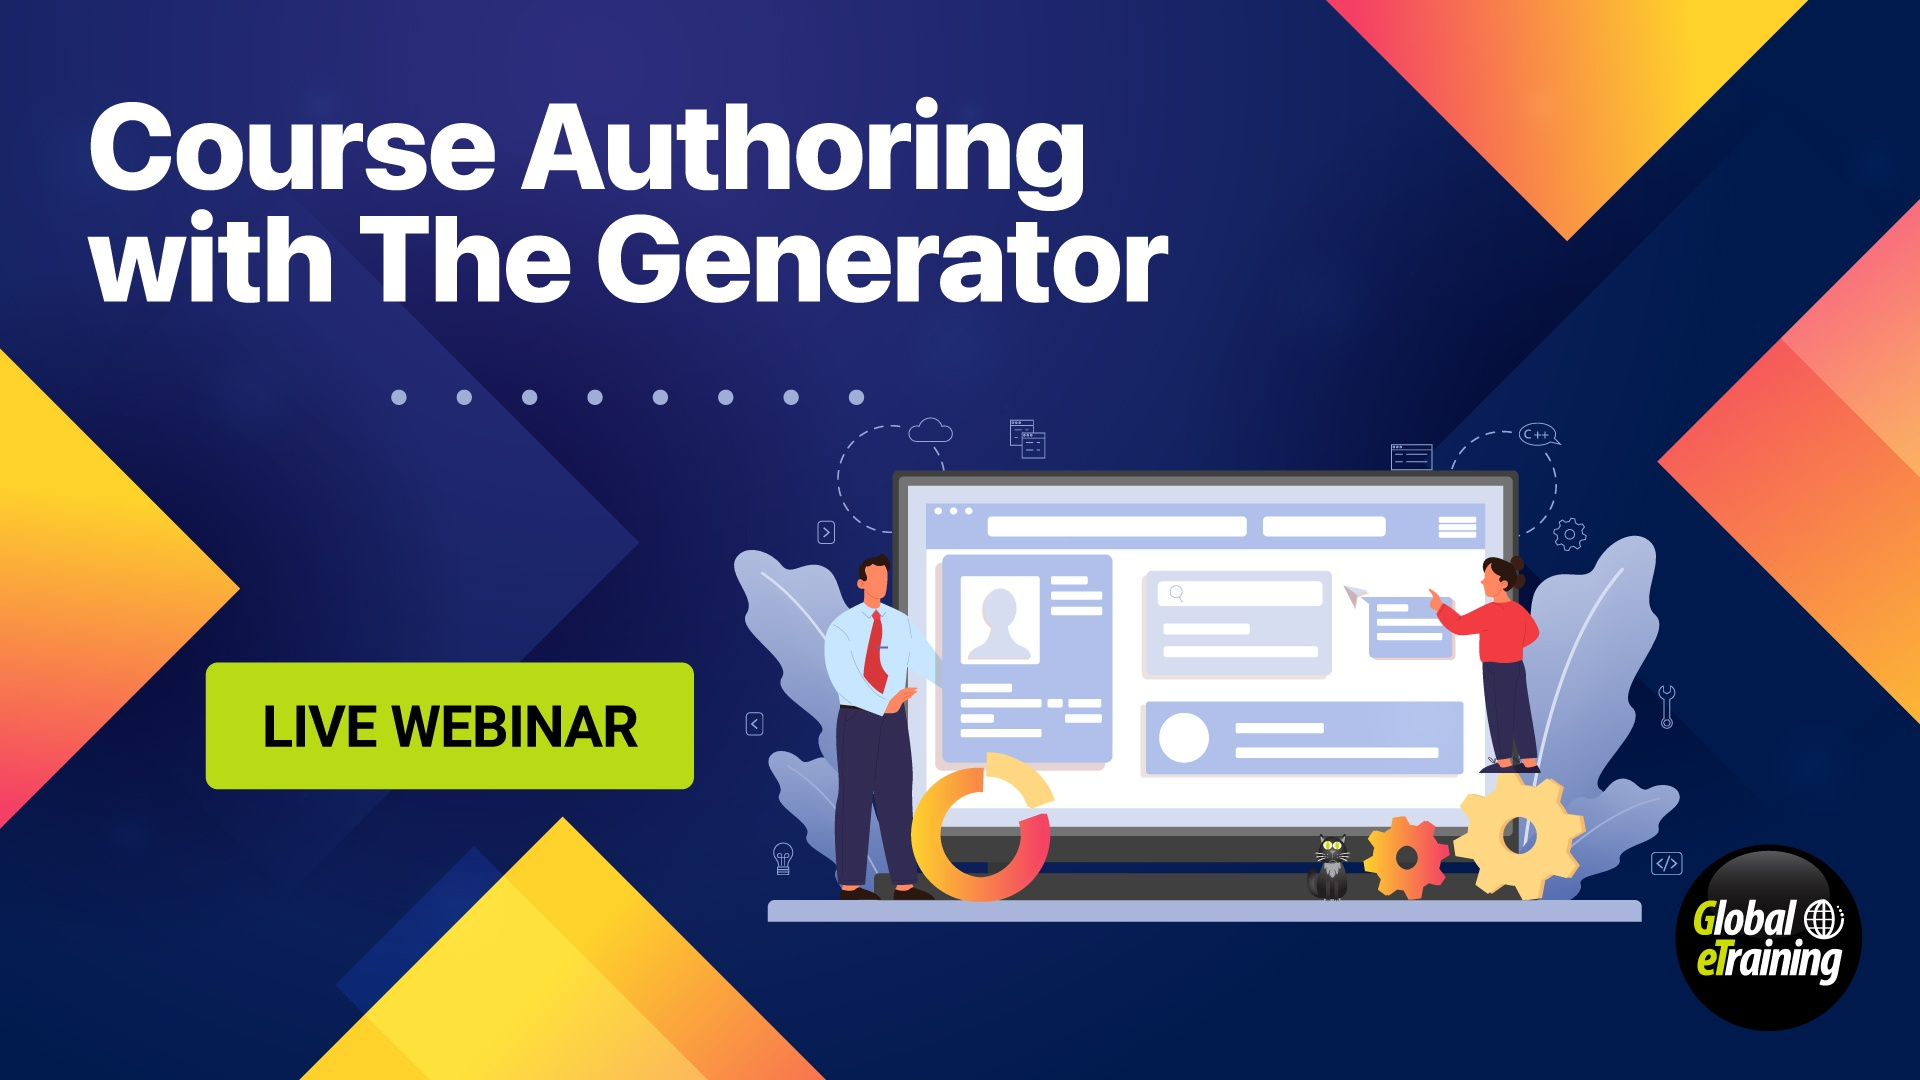 Course Authoring with The Generator